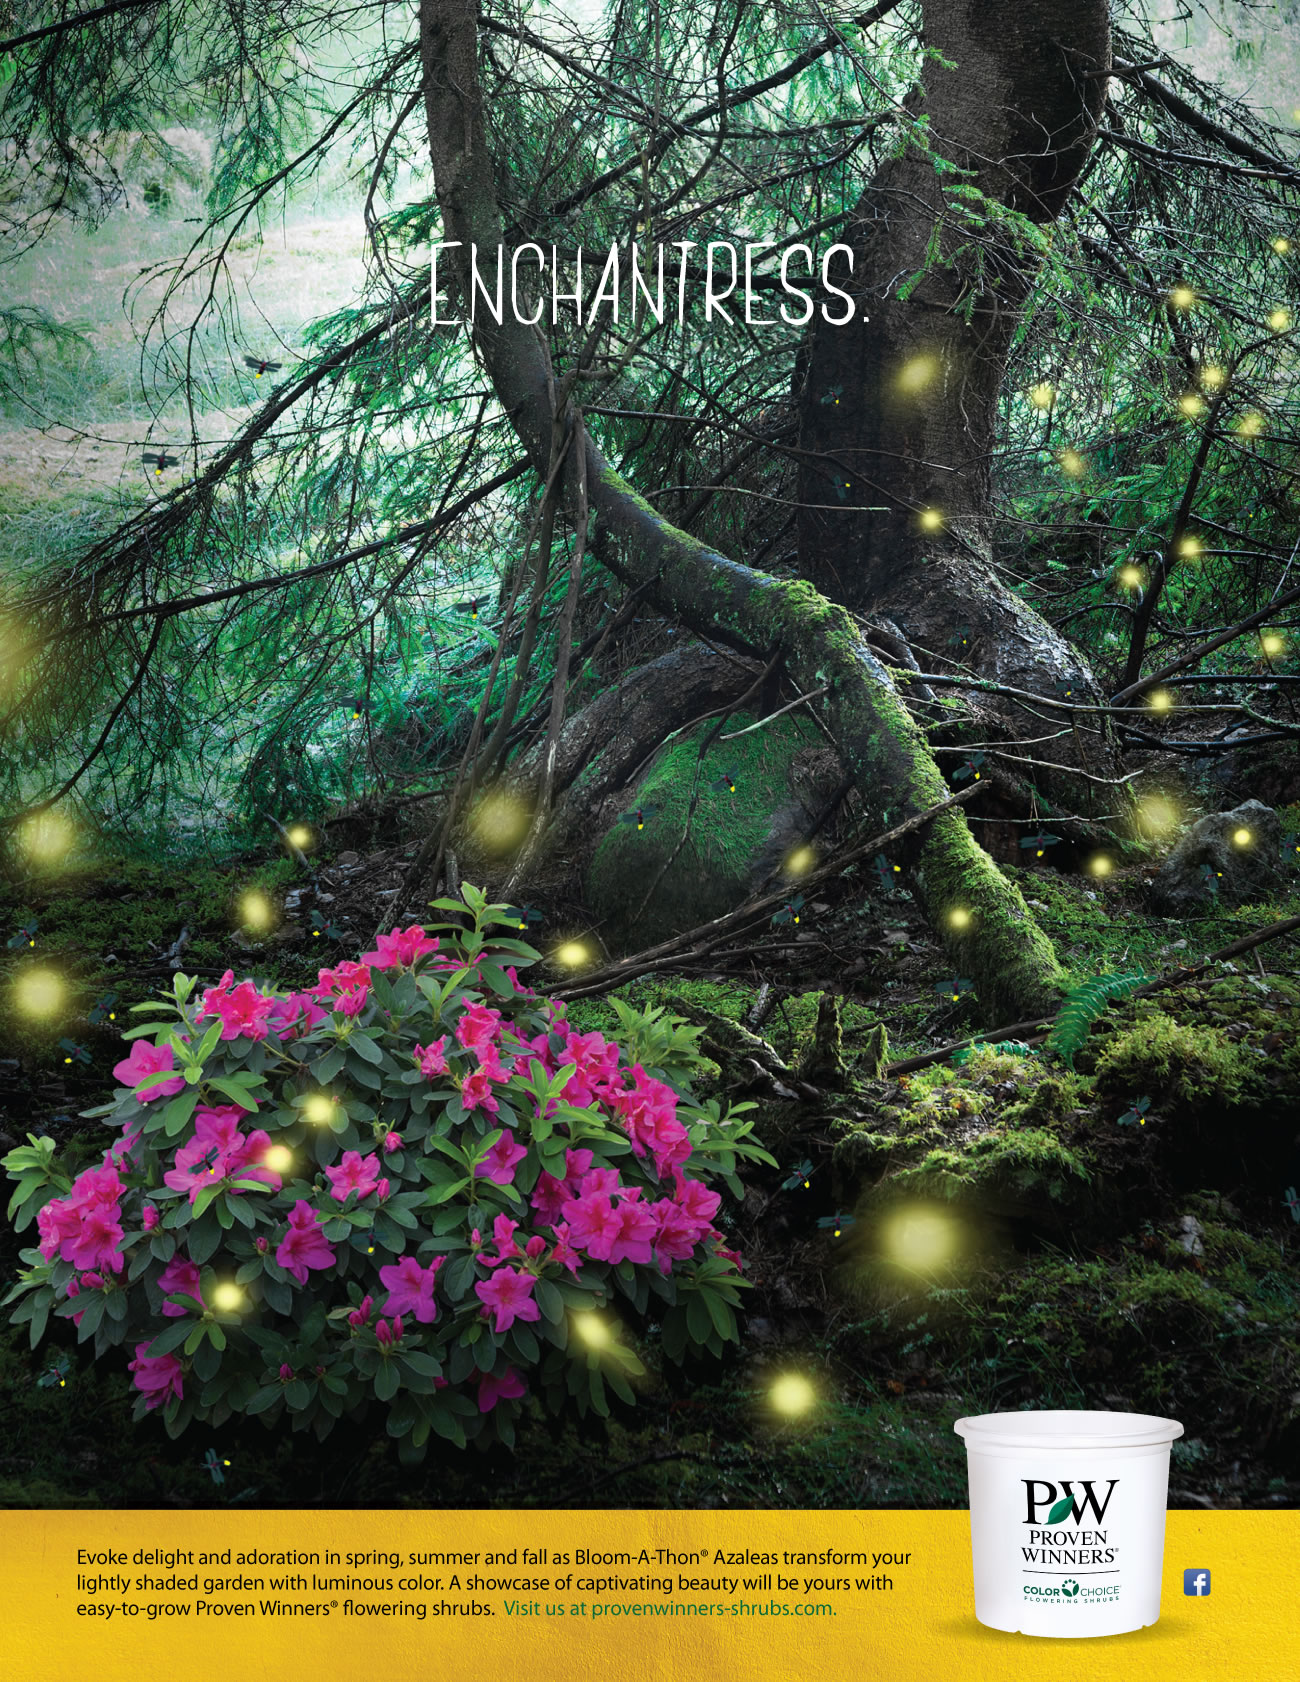 Proven Winners Personas Enchantress Print Ad